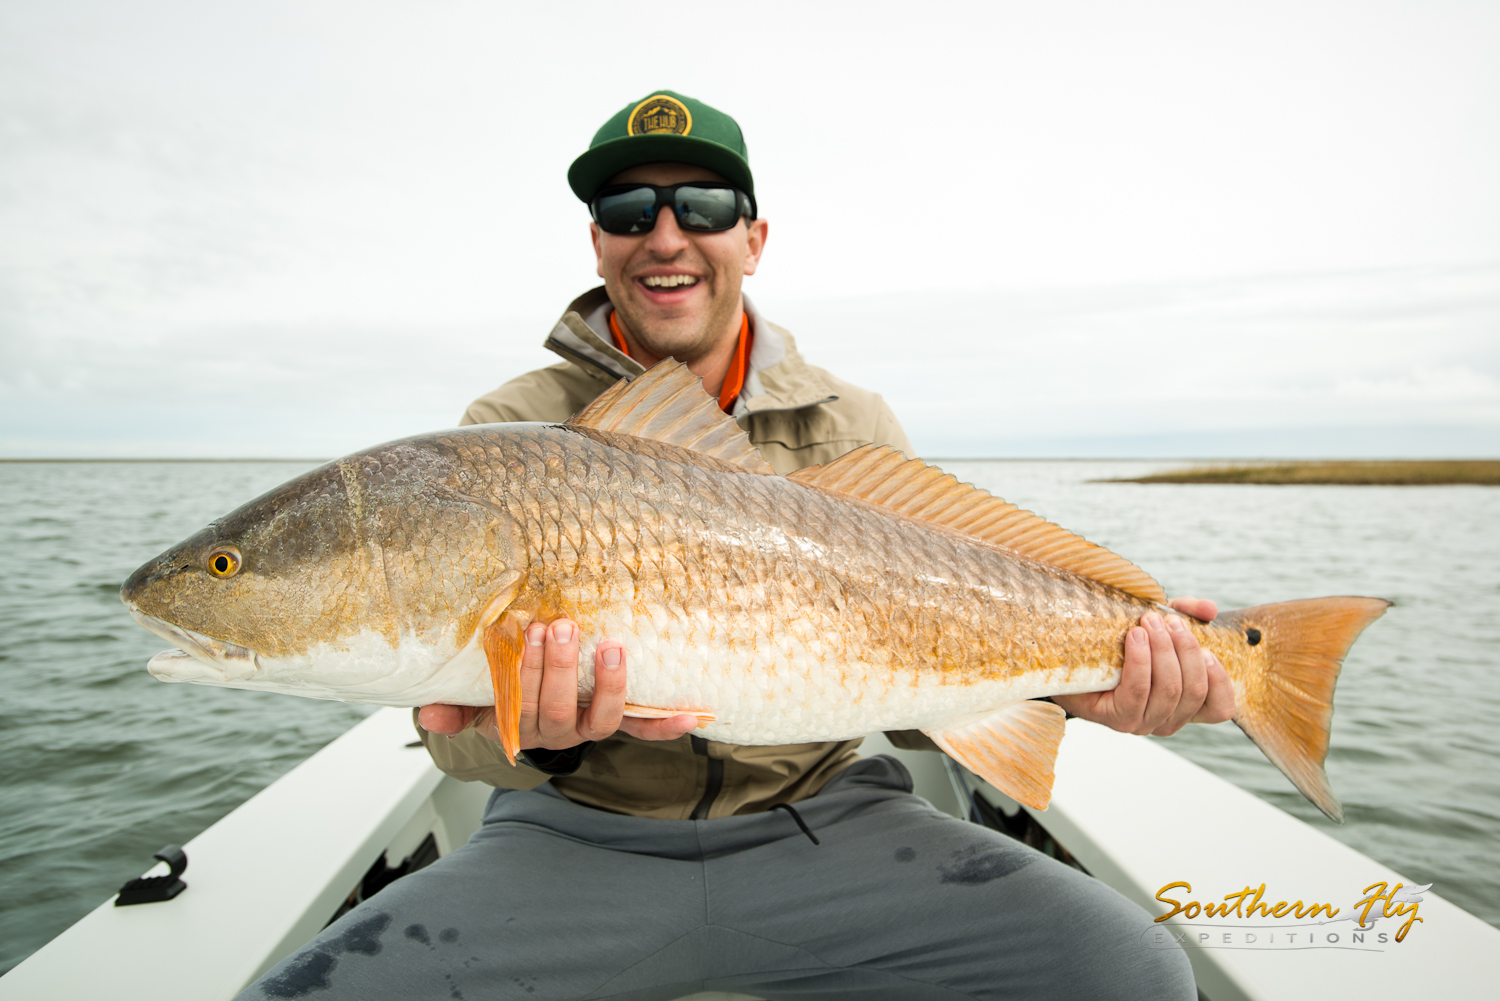 fly fishing new orleans la southern fly expeditions hopedale woodland with captain brandon keck